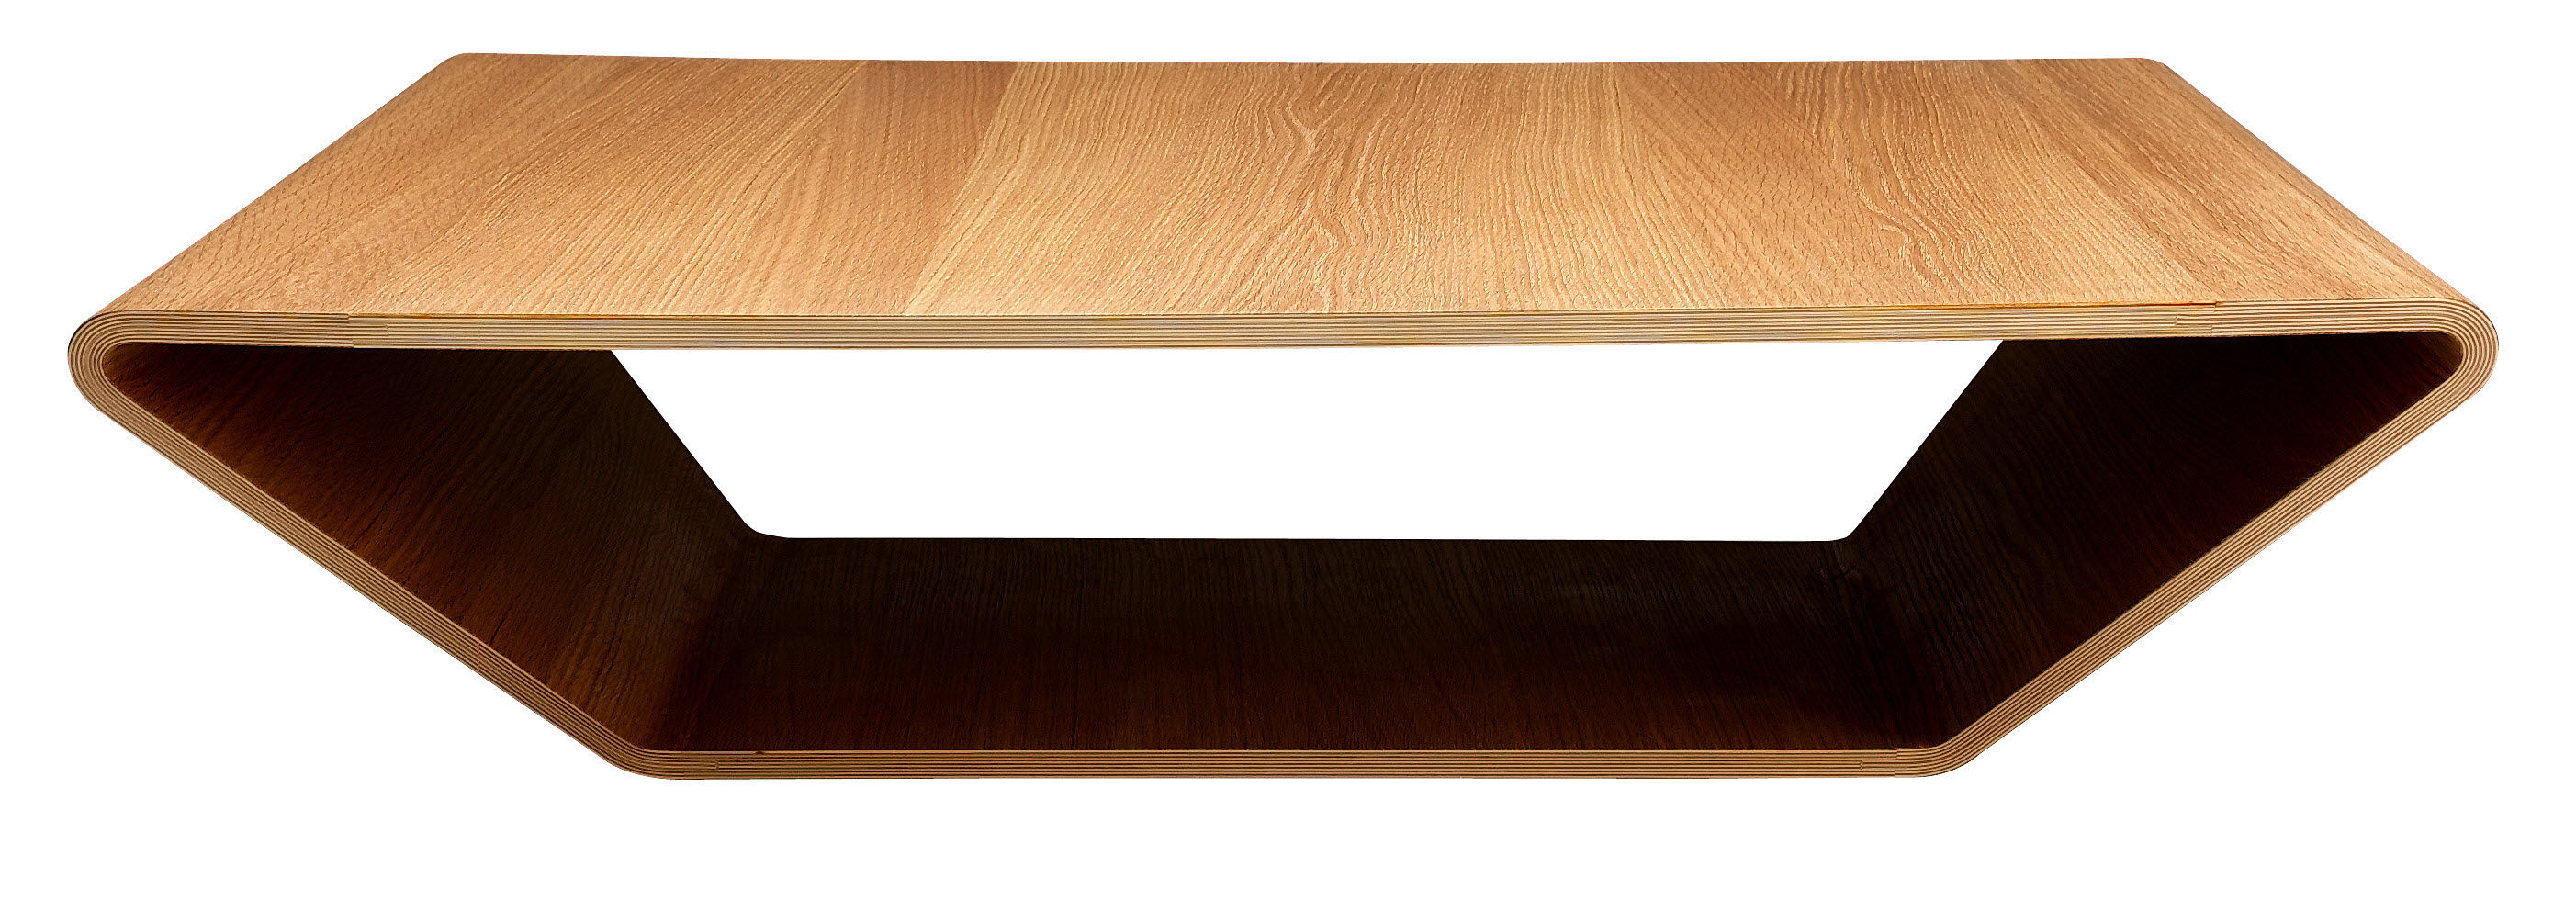 Contemporary coffee table oak walnut birch BRASILIA by